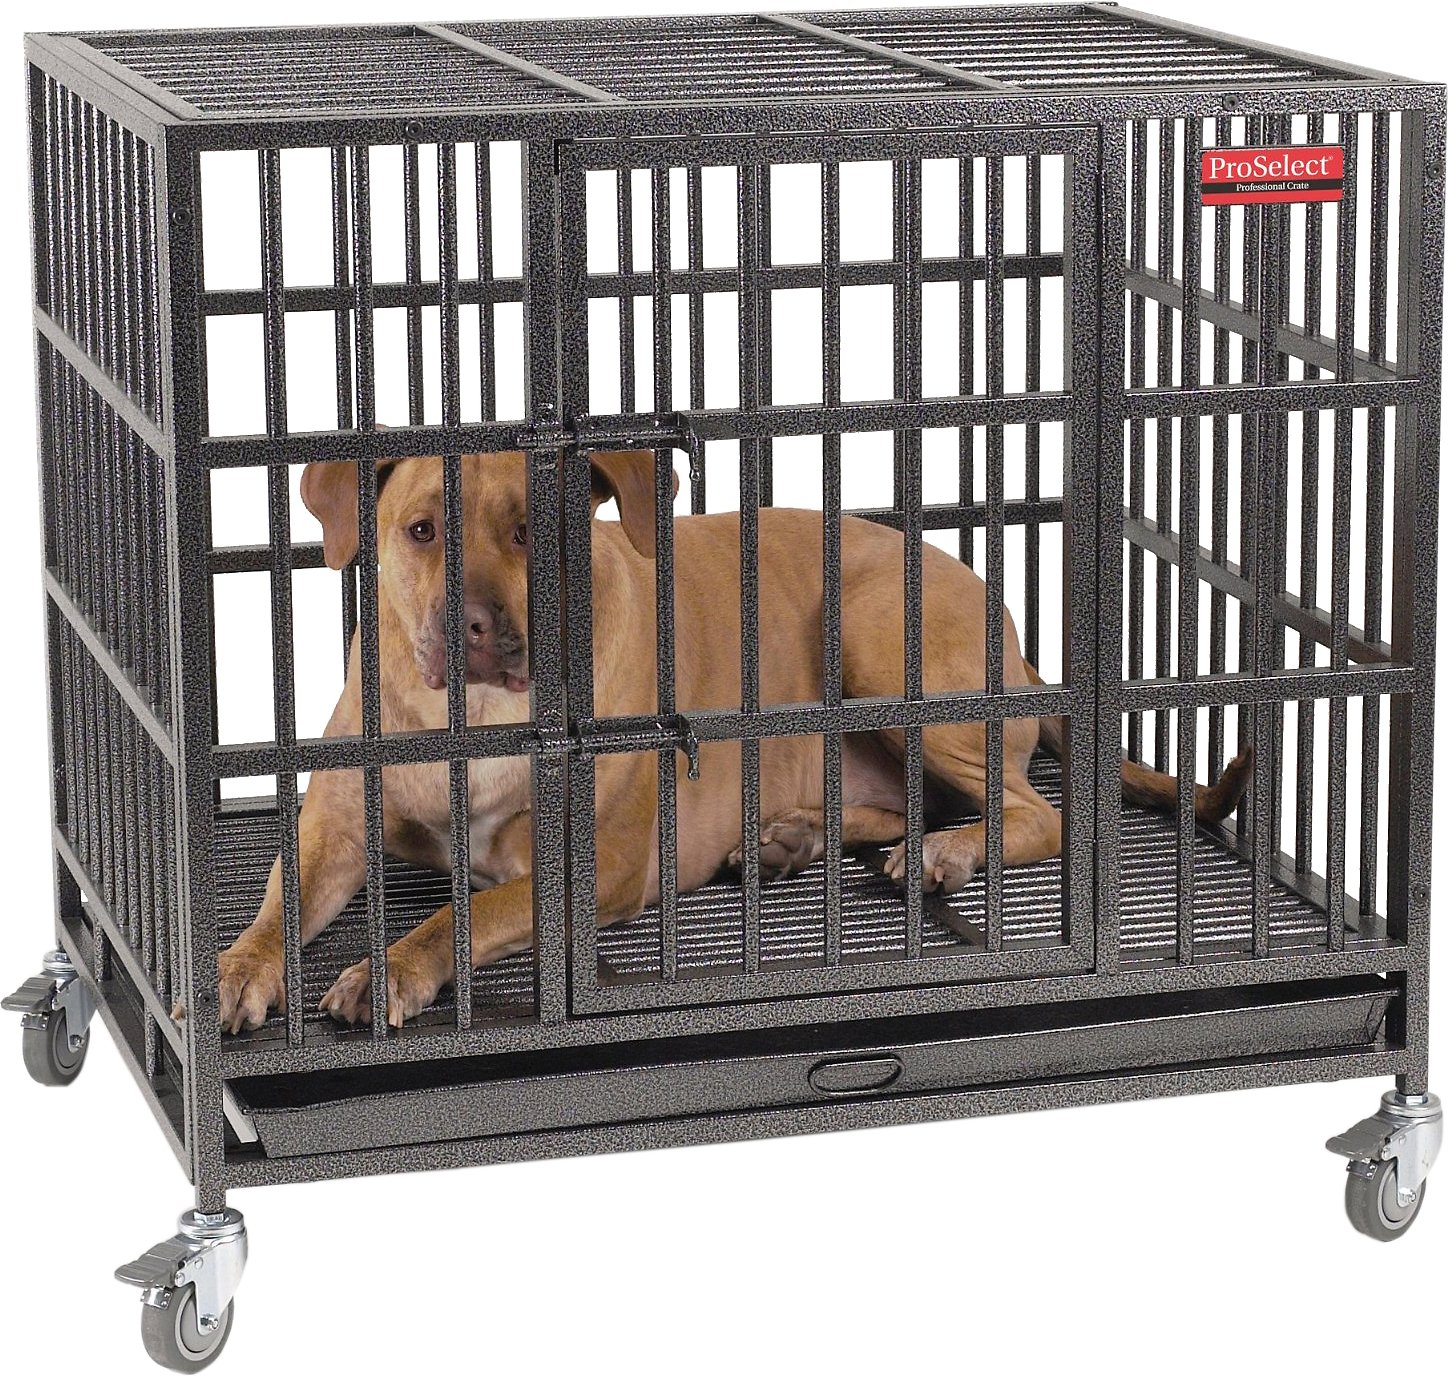 Proselect empire dog cage medium chewycom for Large dog cages for sale cheap